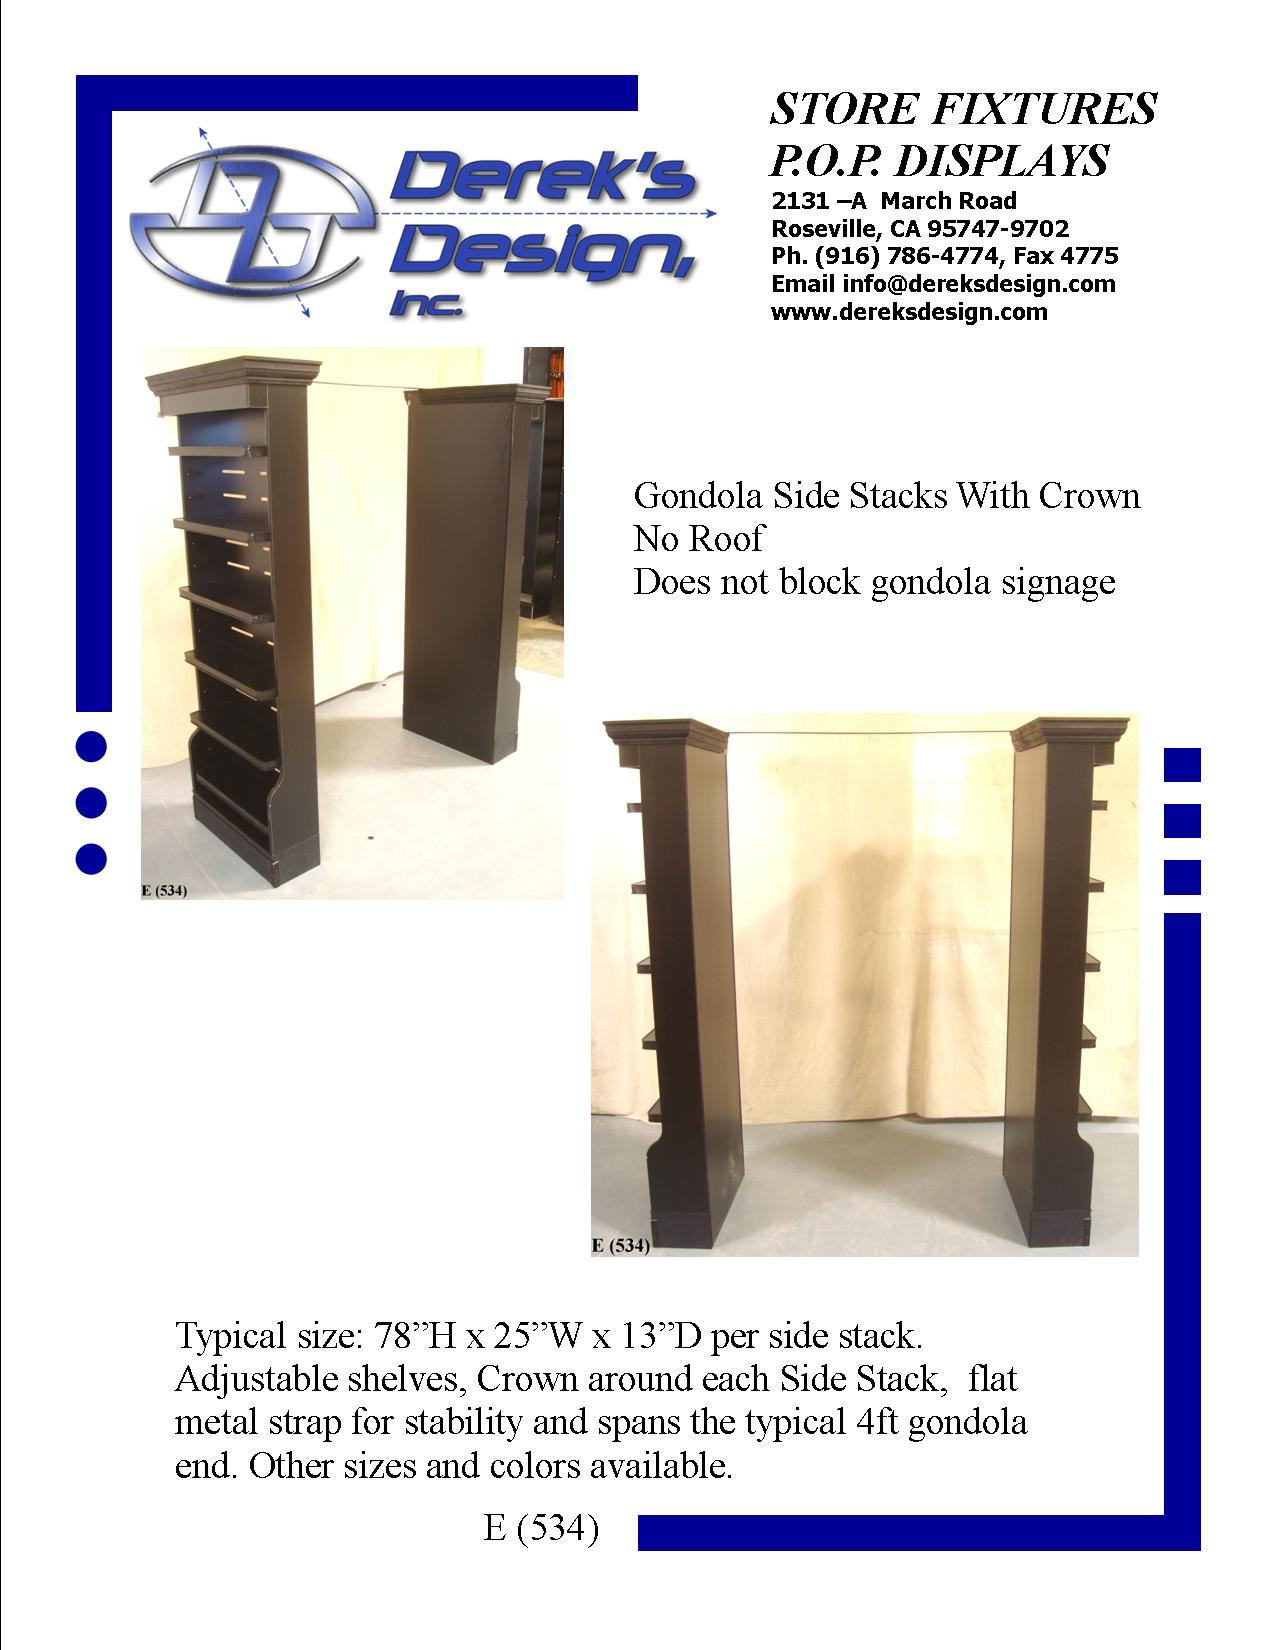 "<a href=""mailto:orders@dereksdesign.com?subject=E%20(534)&body=http://www.dereksdesign.com/e-534-gondola-side-stack/"">Click here for inquiry </a>"